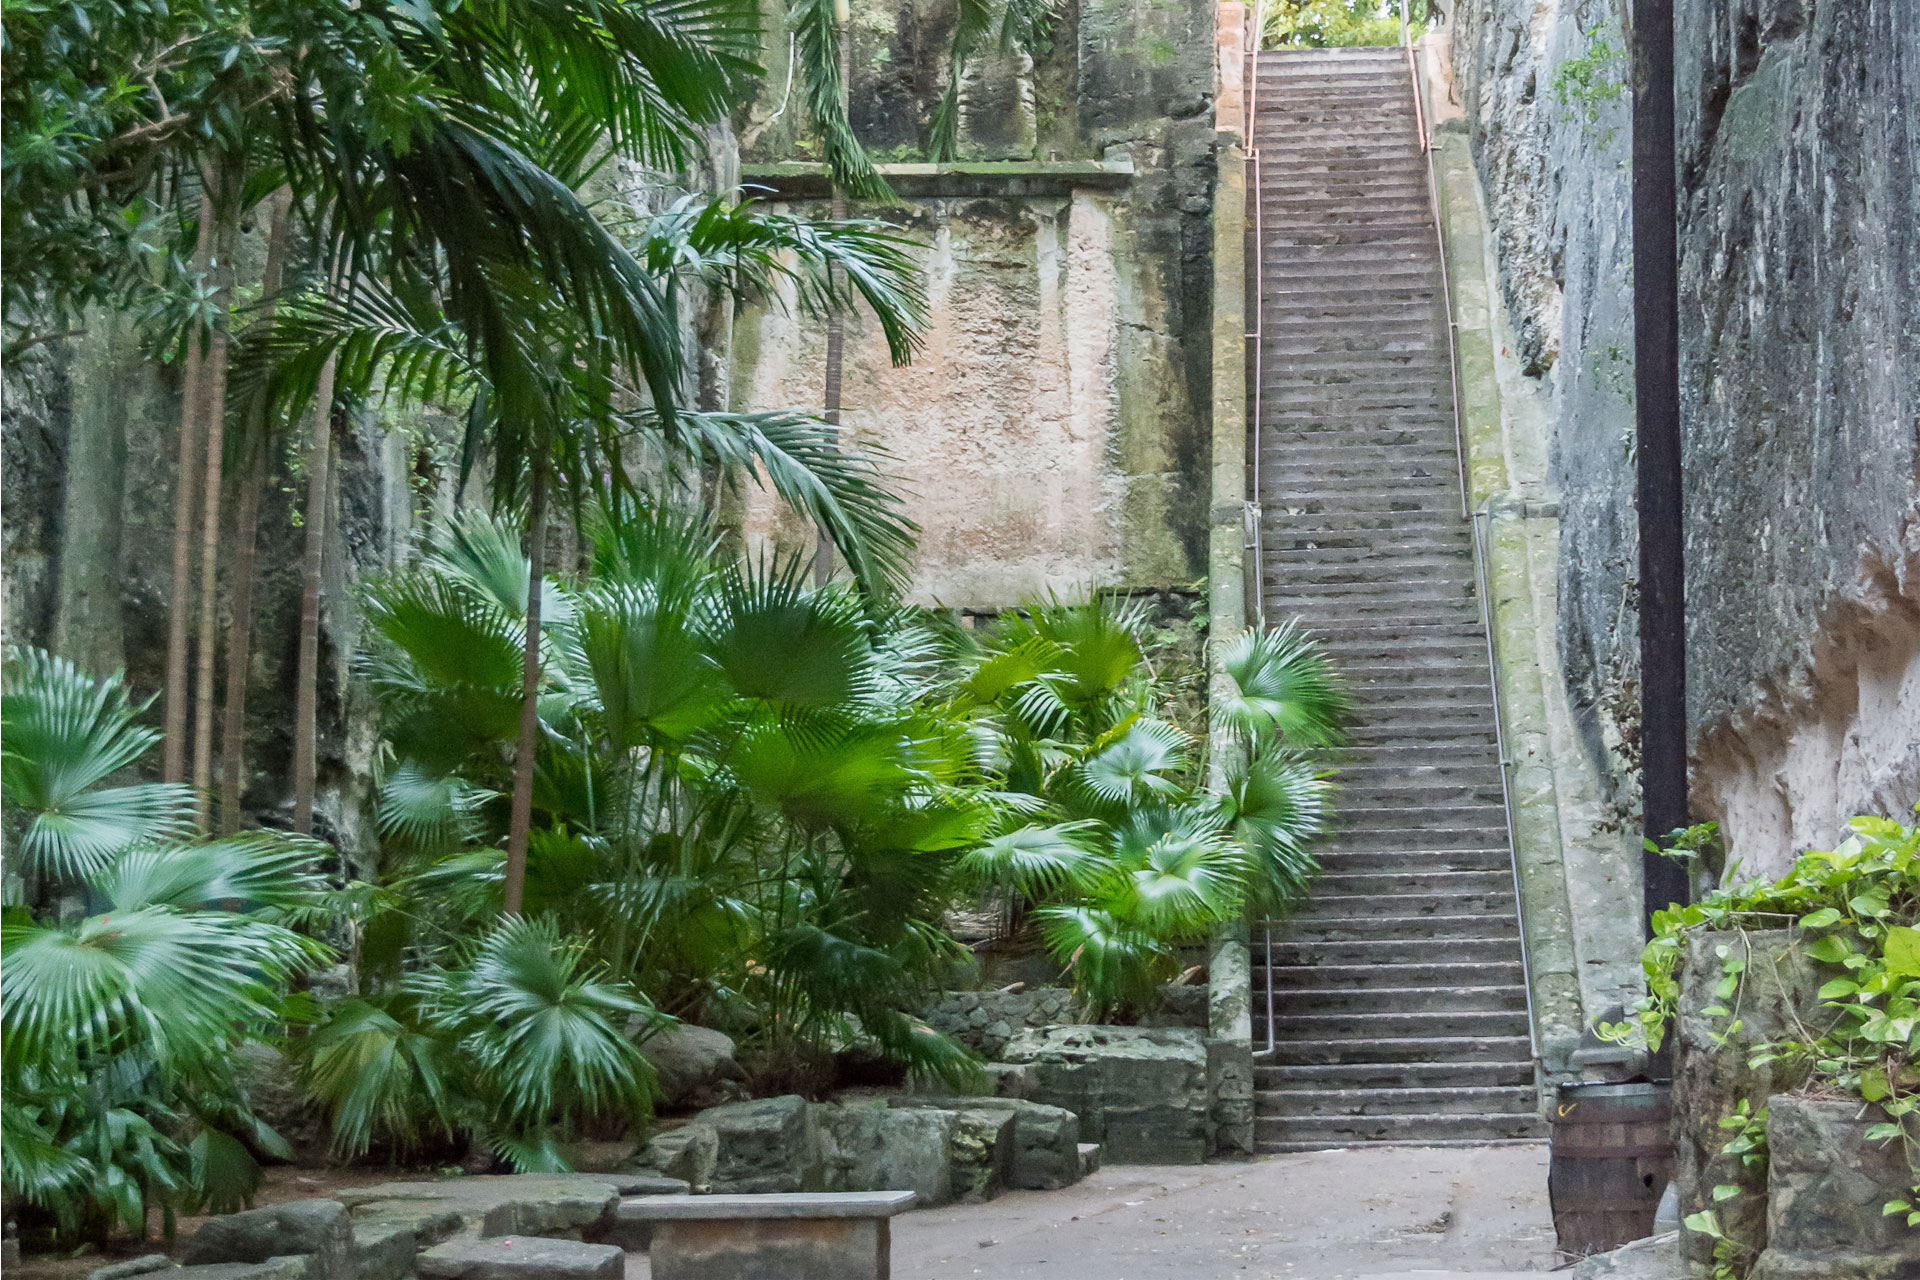 Queens Staircase in Nassau, Bahamas; Courtesy of dnaveh/Shutterstock.com